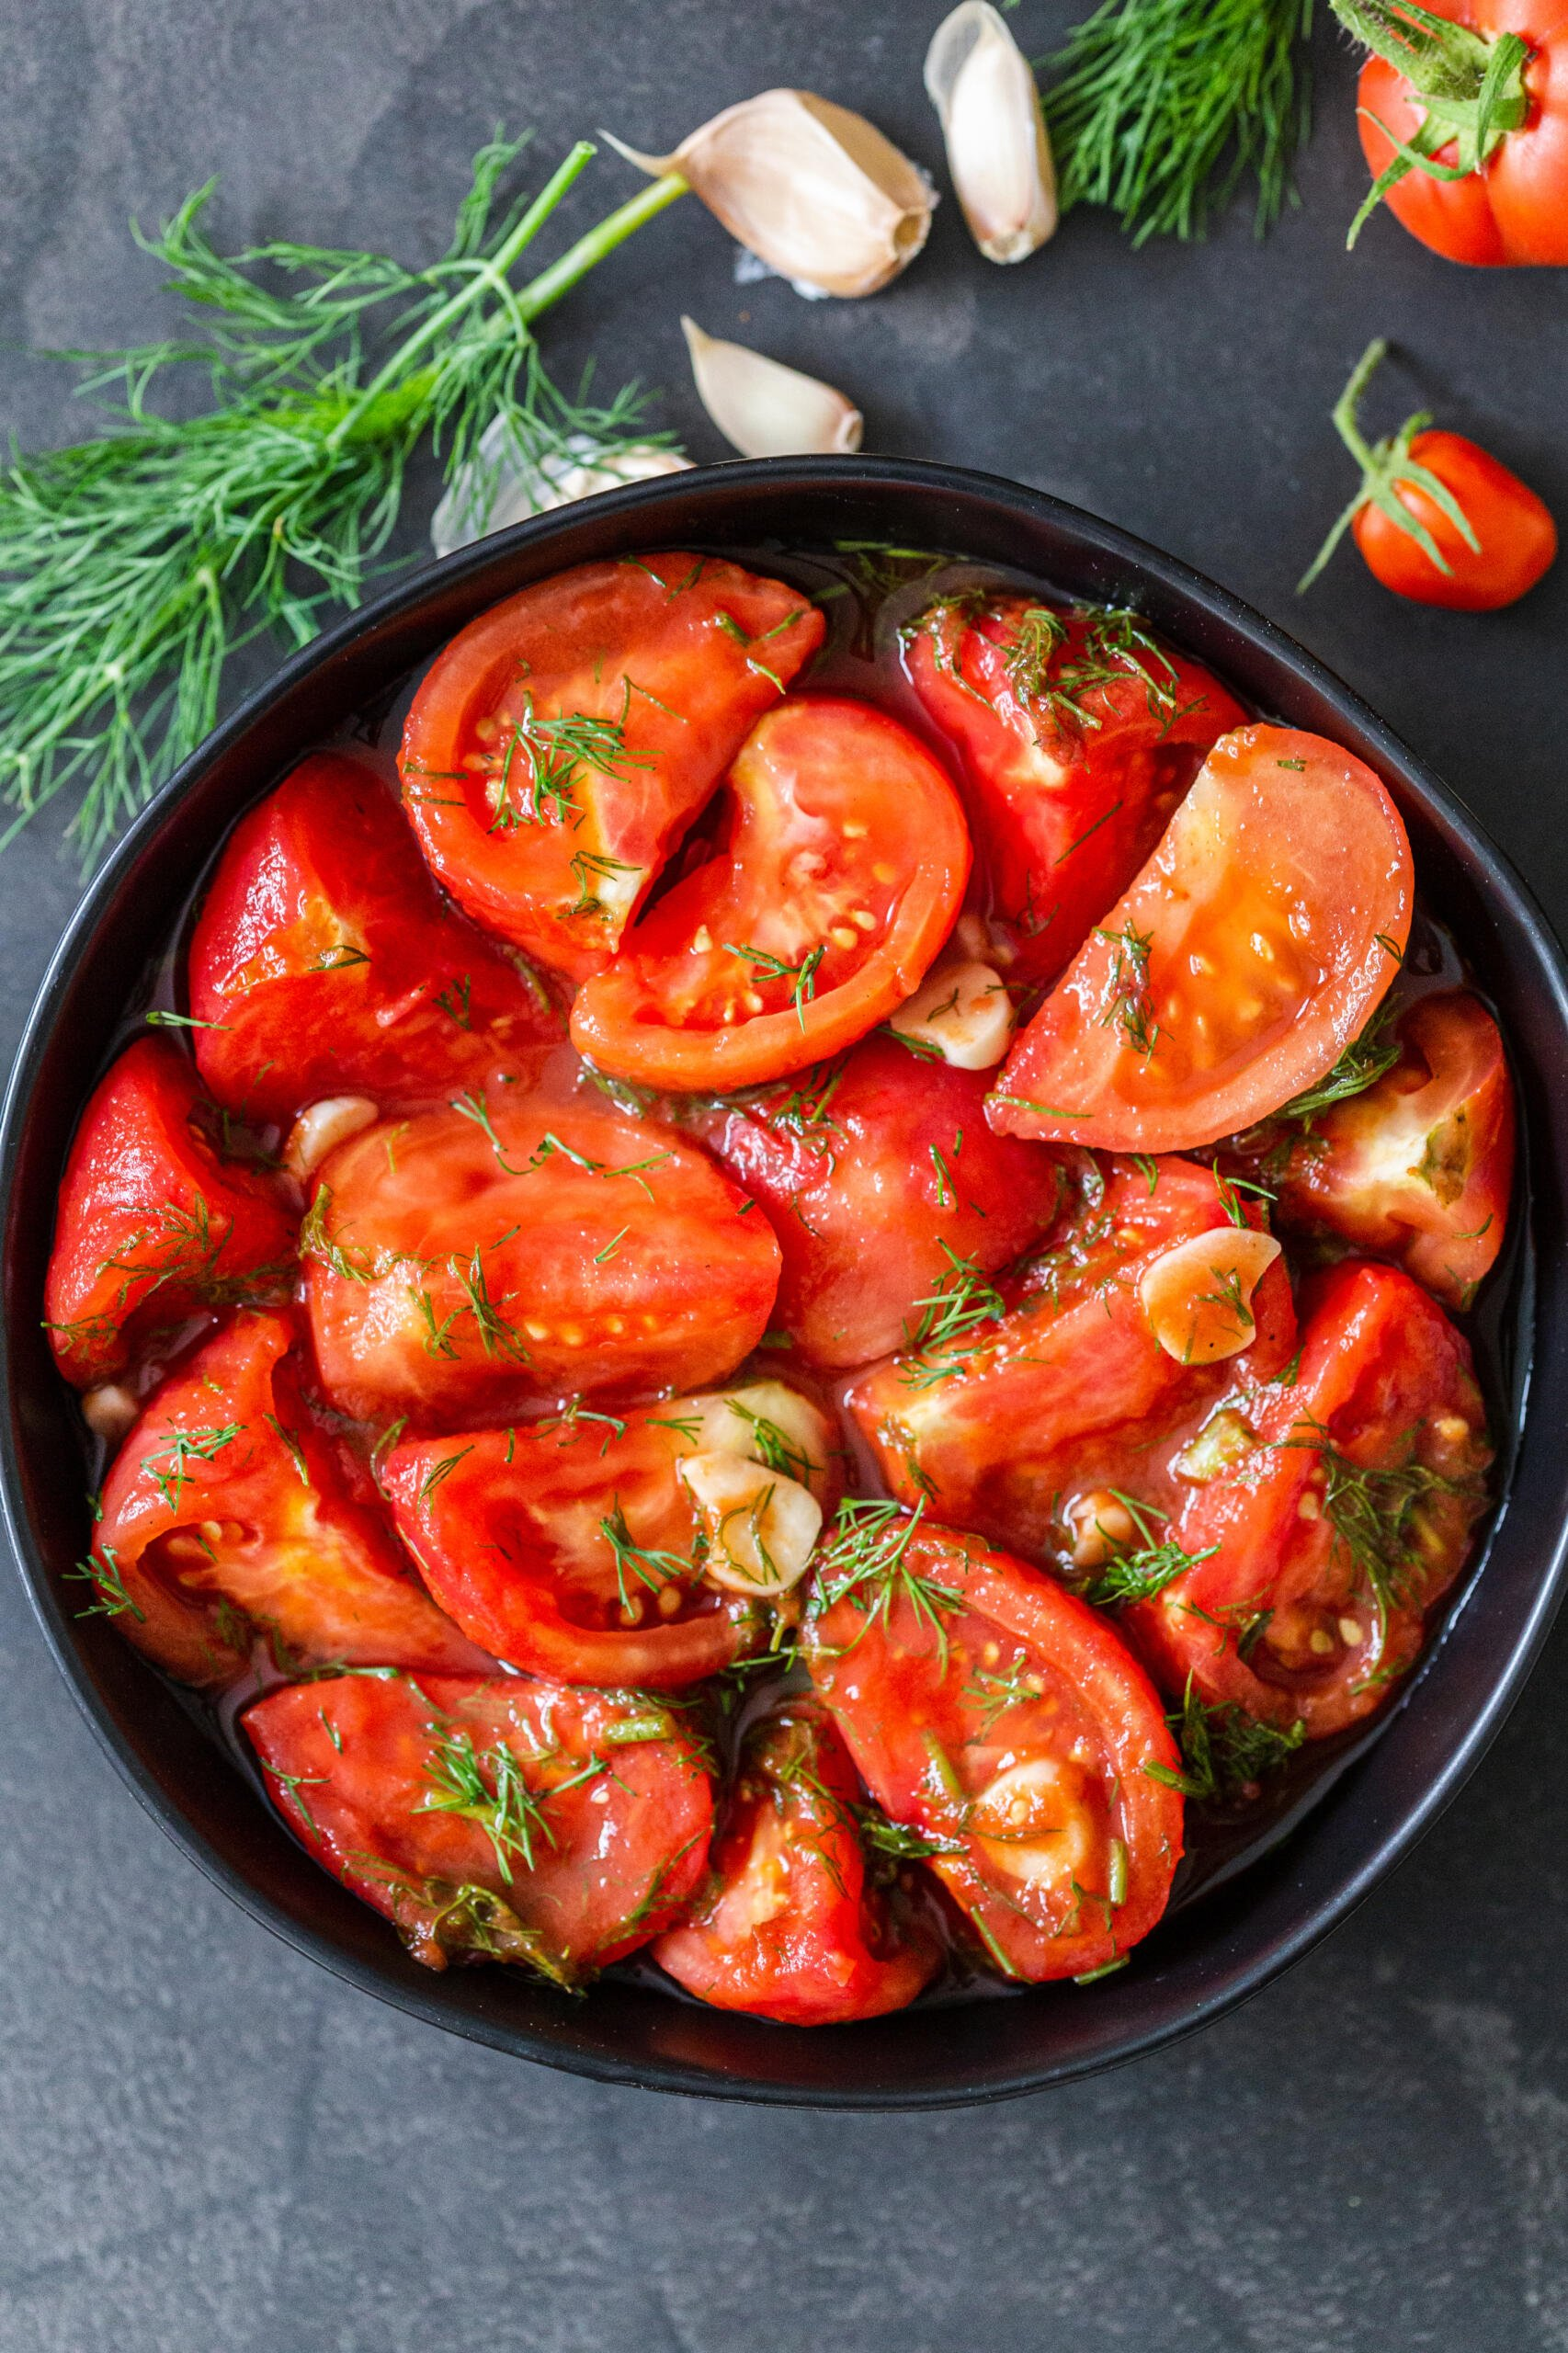 Marinated tomatoes in a bowl